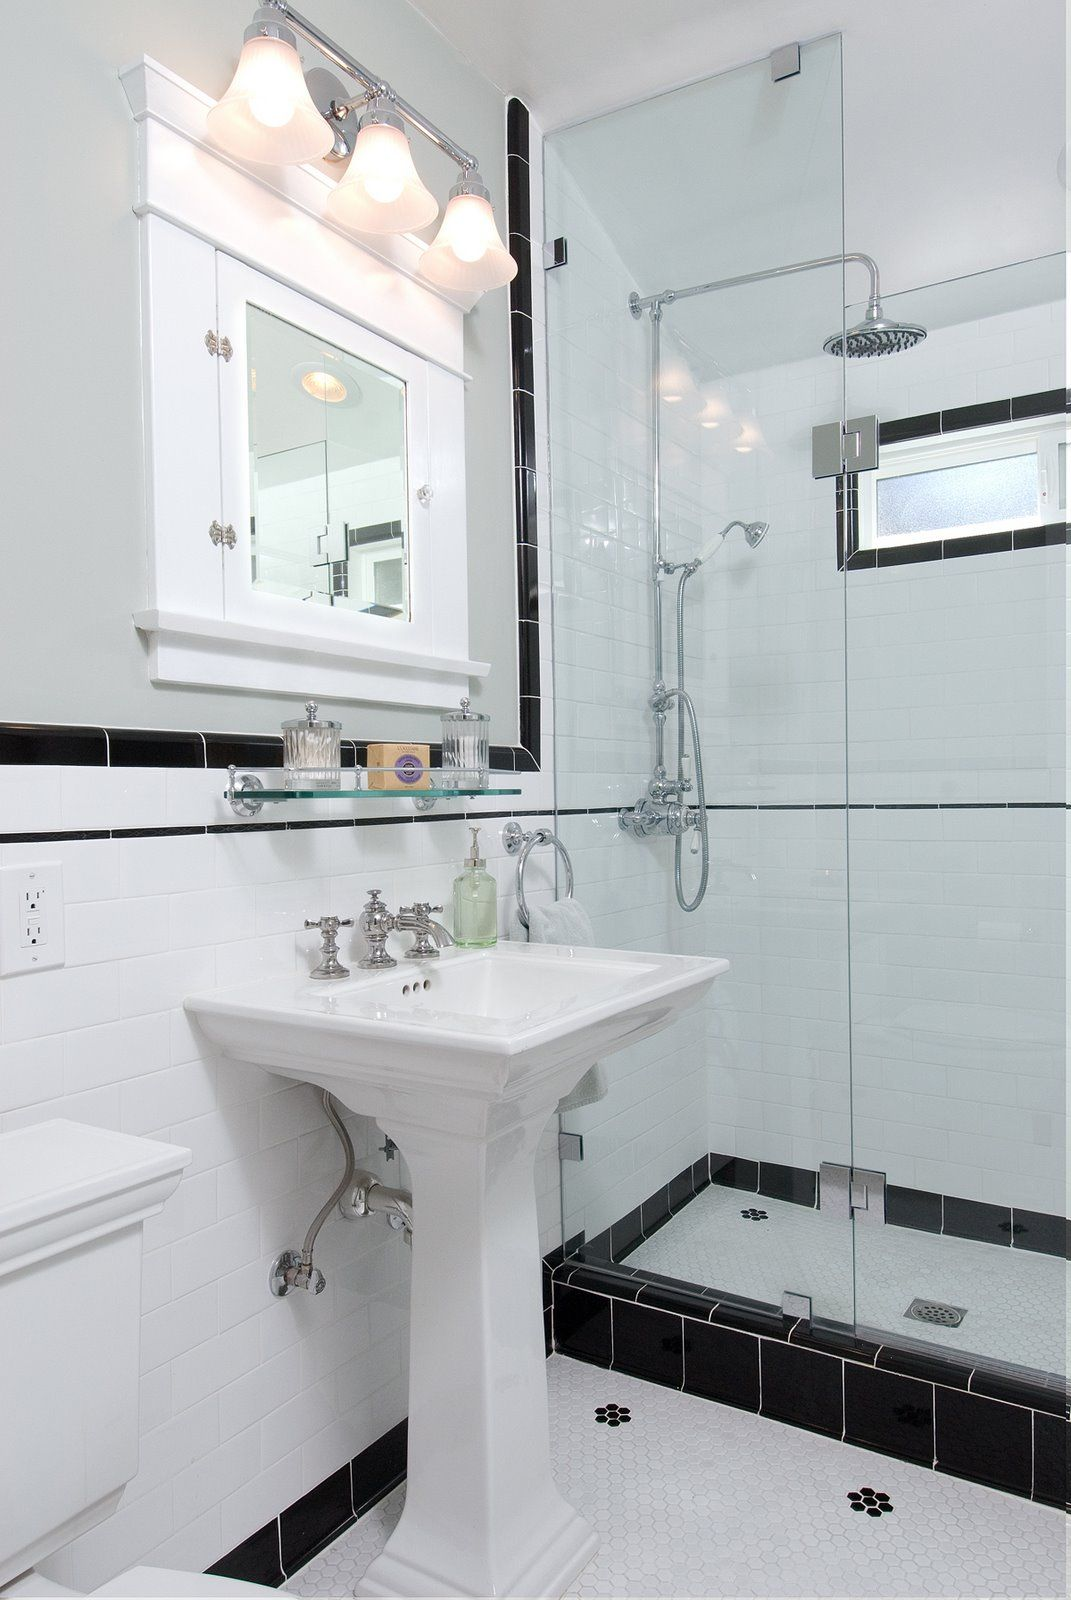 Vintage black and white ny bathroom bathrooms pinterest for 1920s bathroom designs